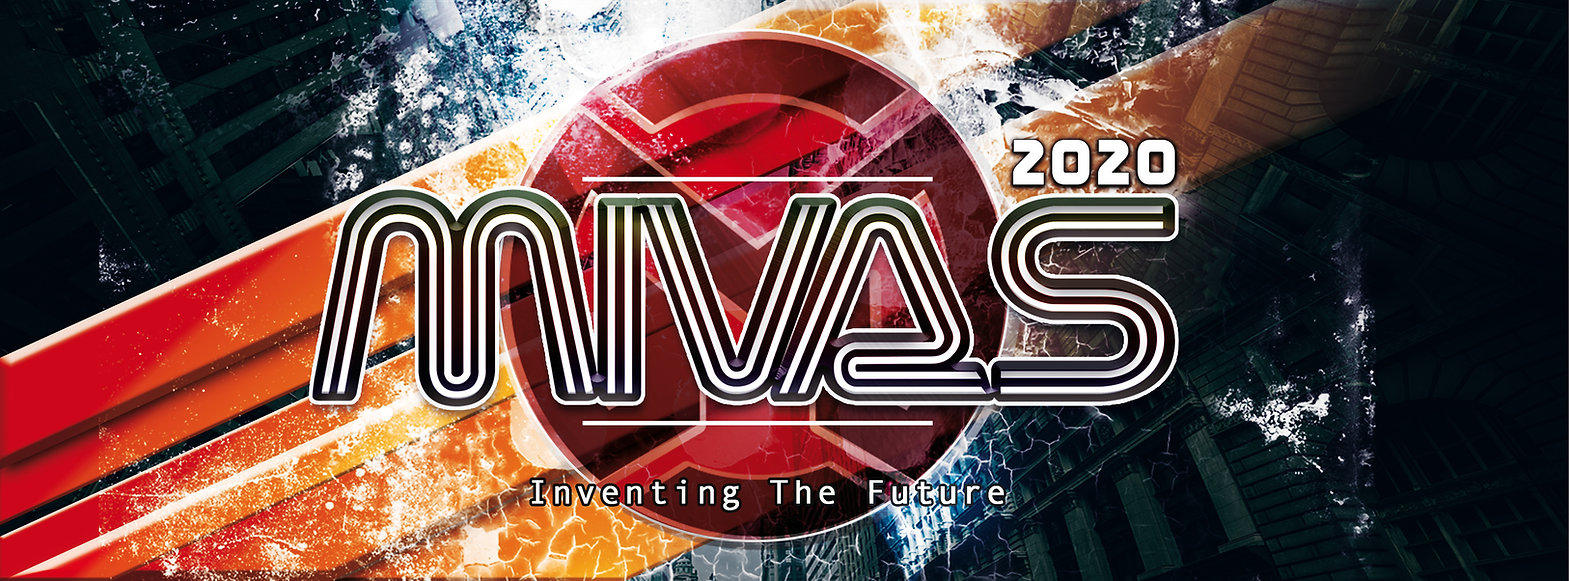 MIVAS 2020 - WEBSITE FRONT.jpg